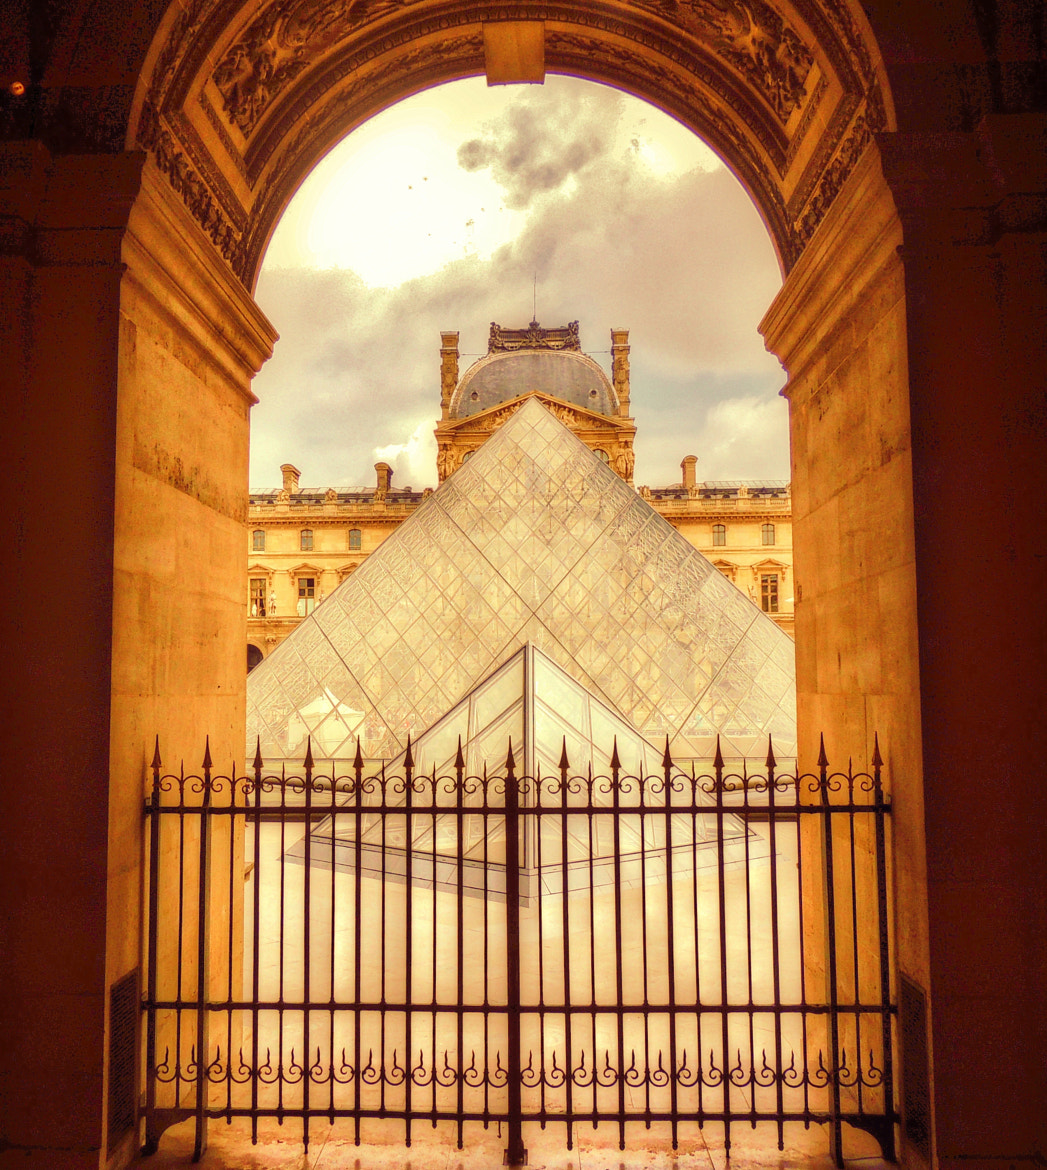 Photograph View from within the Louvre. by Ravi S R on 500px